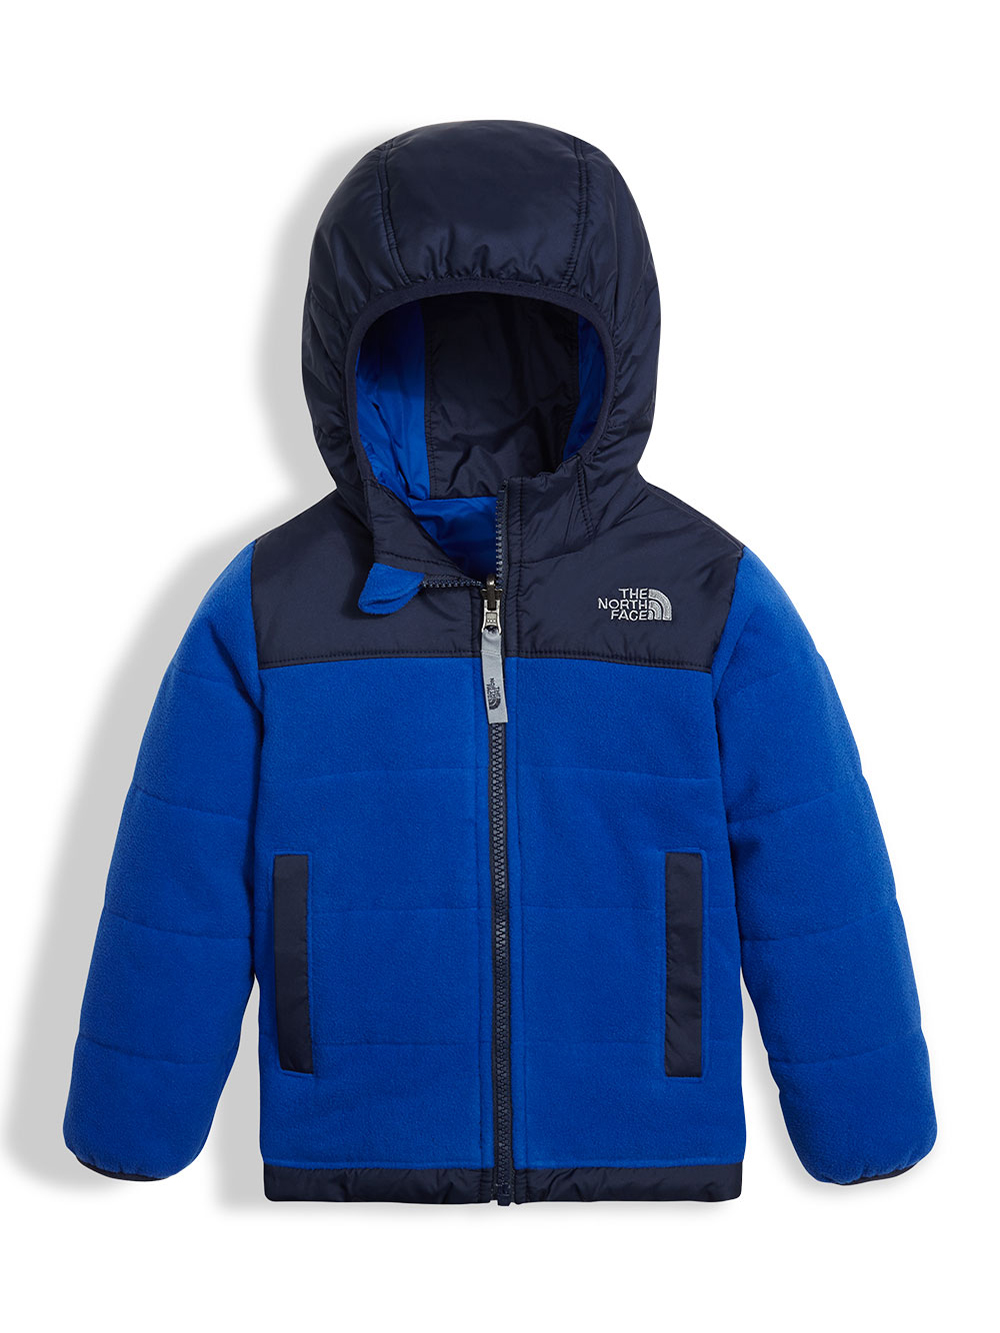 cff0678ee Toddler Reversible True/False Jacket by The North Face in bright cobalt  blue and red